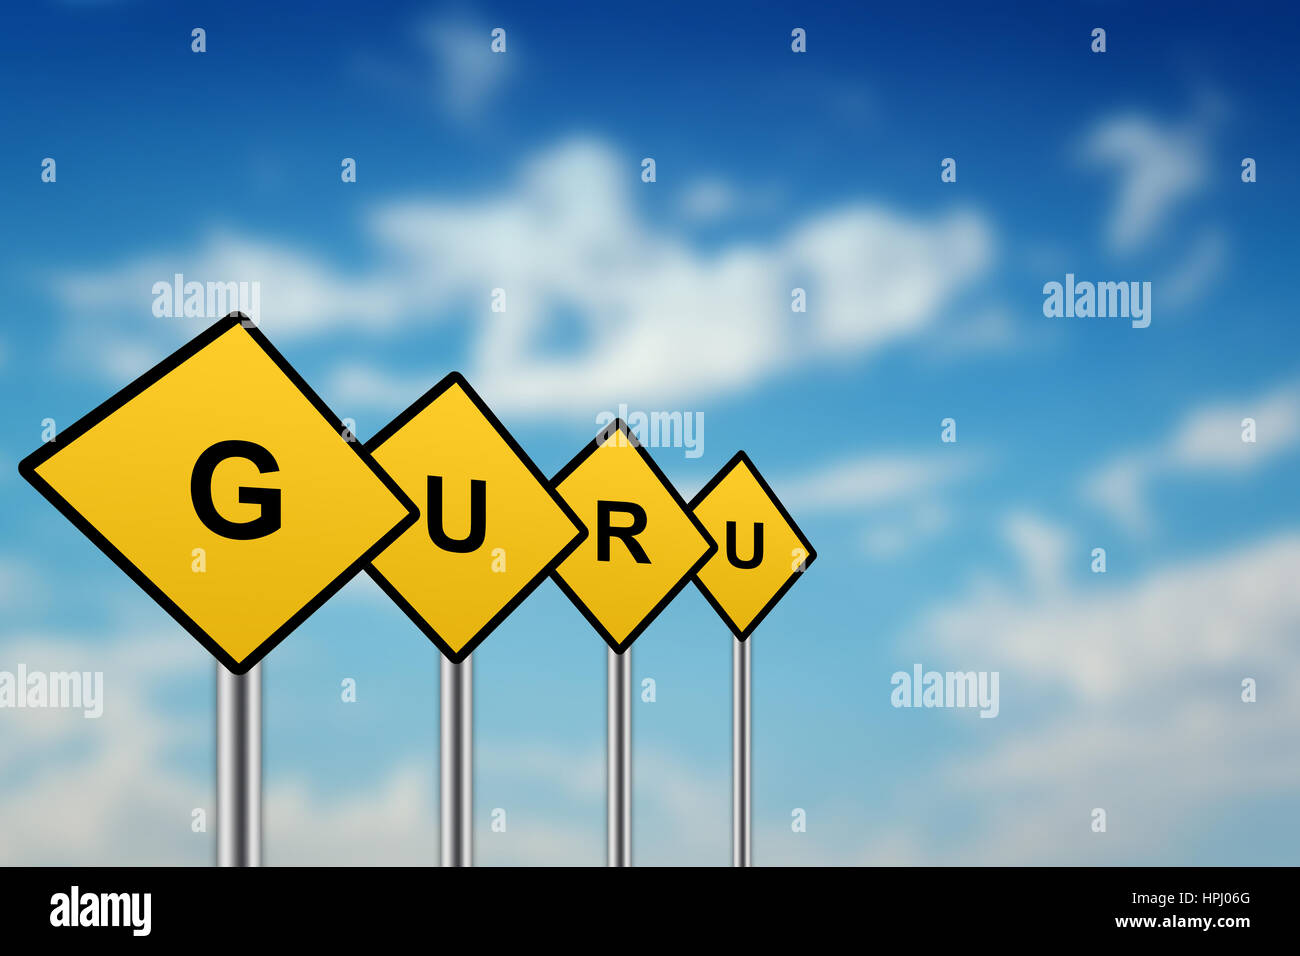 guru on yellow road sign with blurred sky background - Stock Image